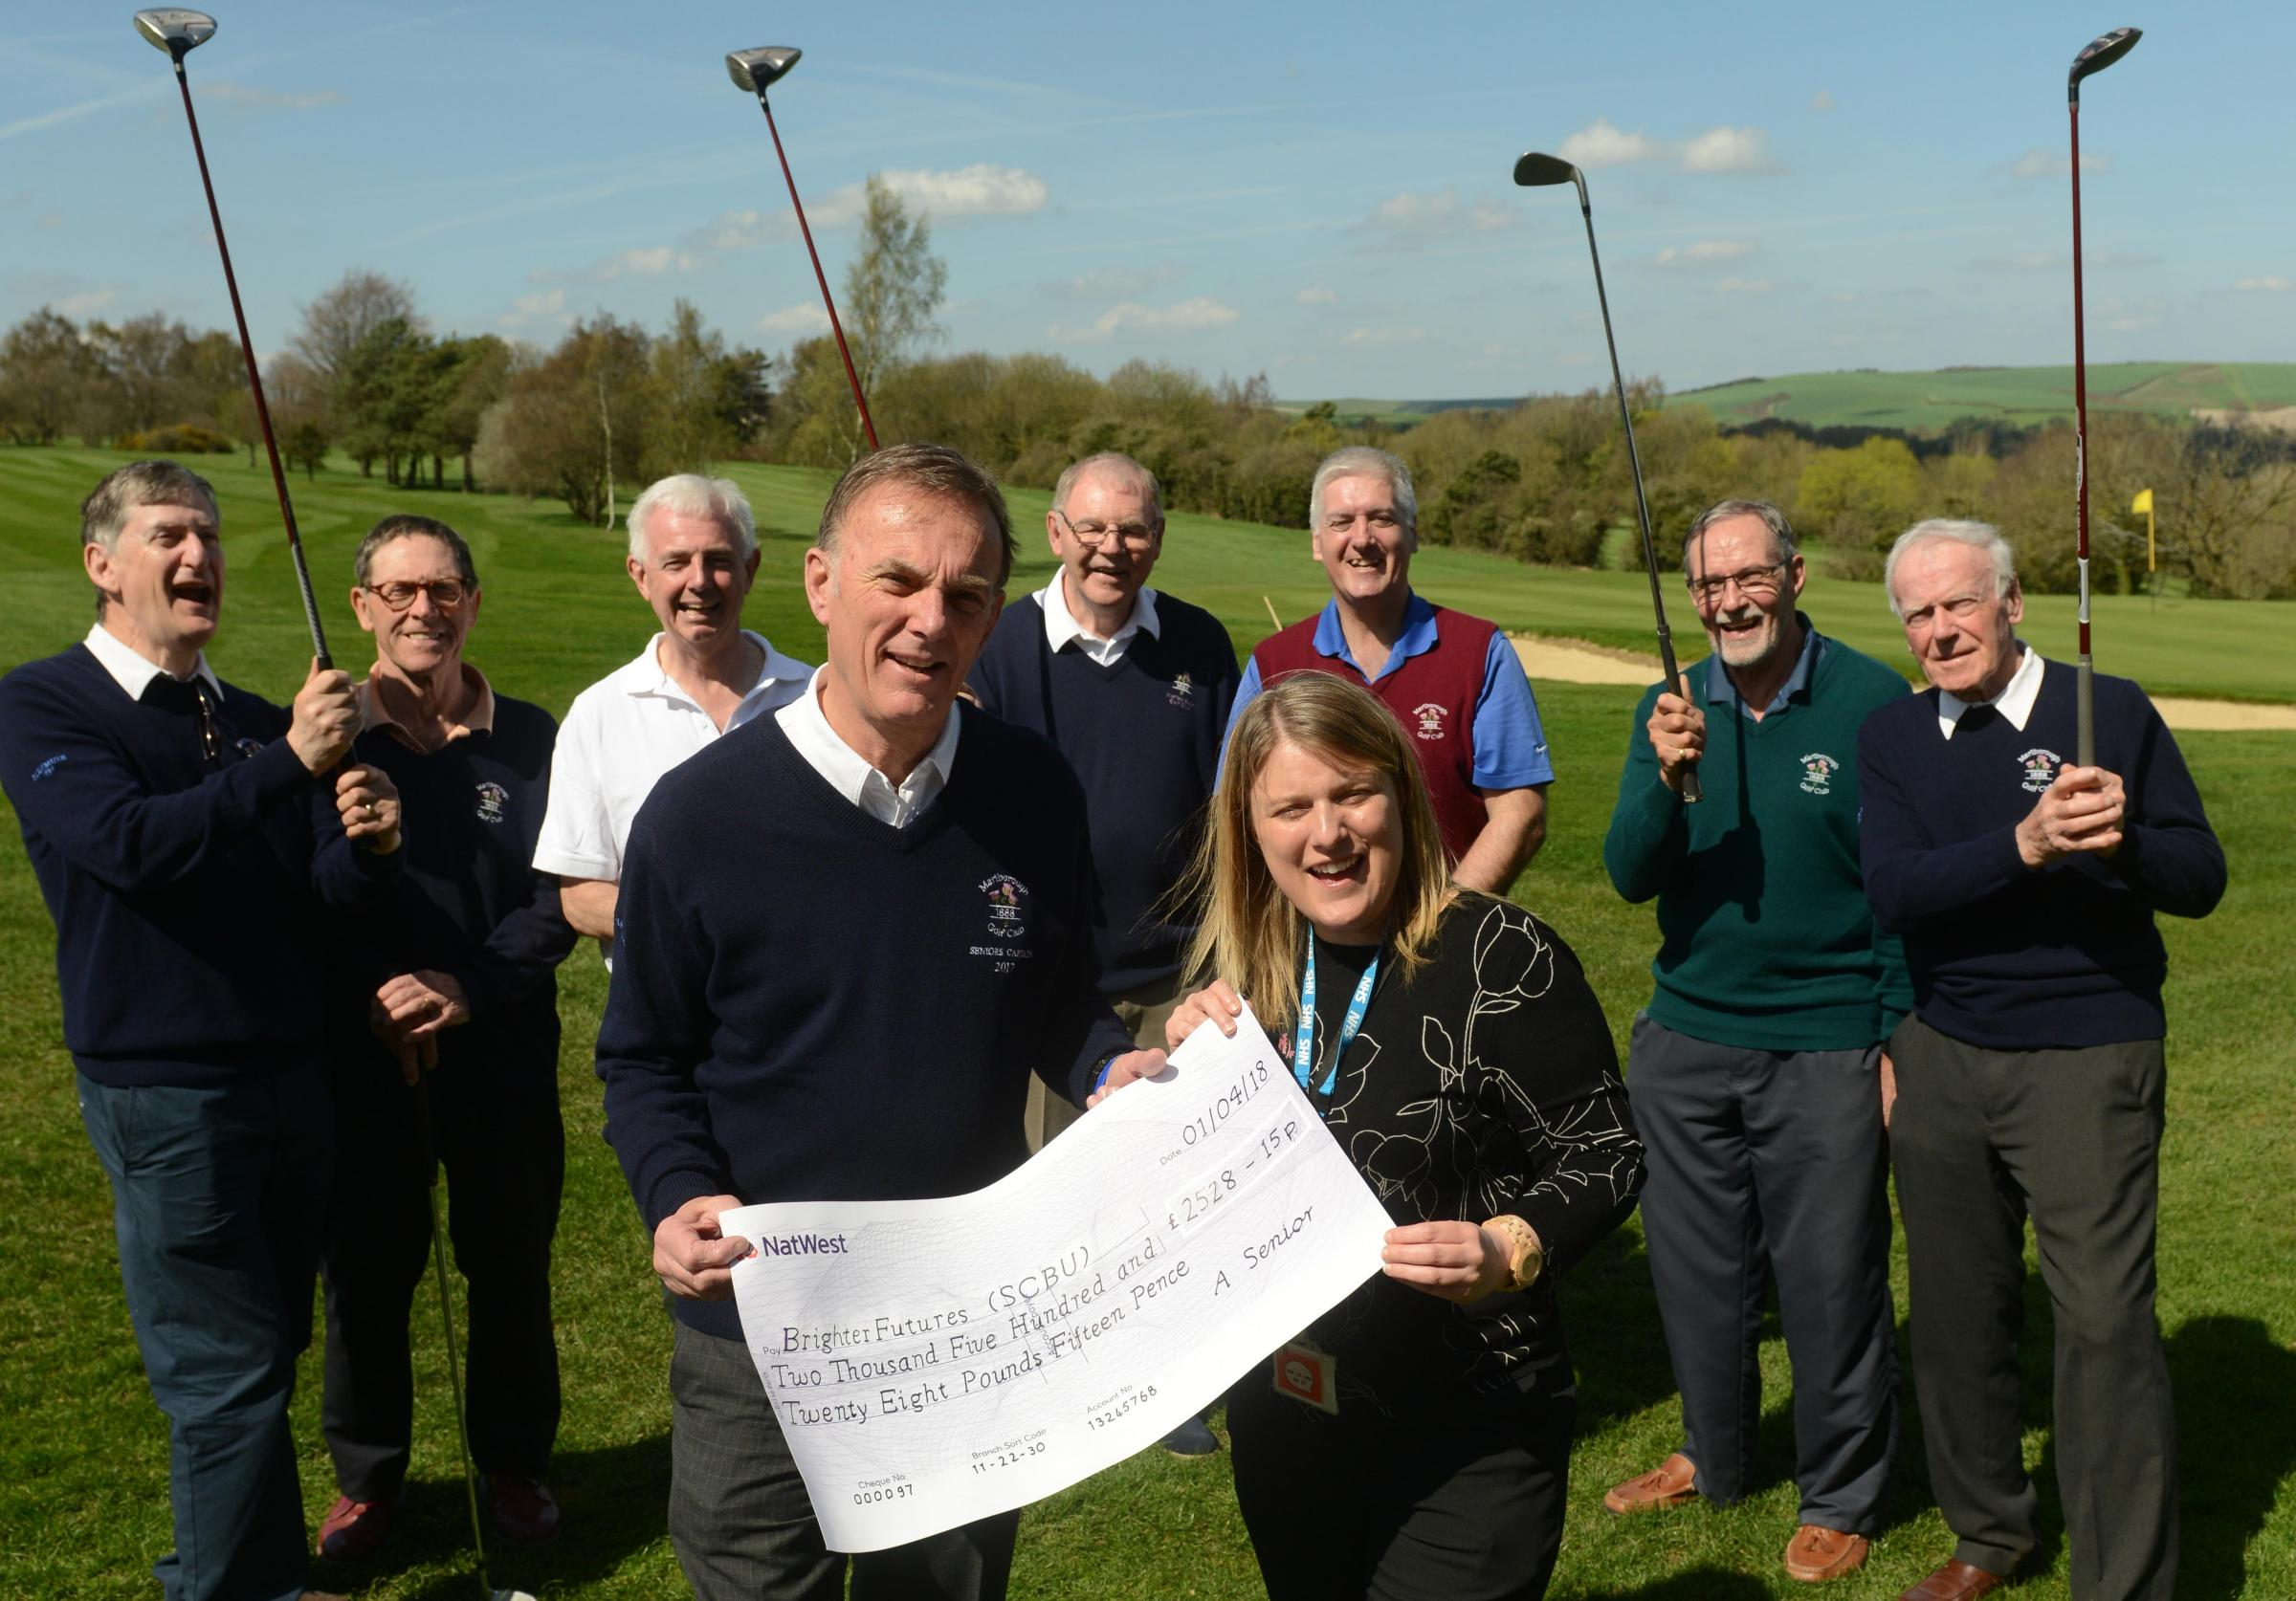 Marlborough golf club present cheque to Brighter Futures. . Photo: Siobhan Boyle SMB2394/3   L-r Garry Bloomfield, Frank Jeffrey, Brian Knox , Rick Bodenham, Geoff North, Henry Pritchard. Front  Mike Paines, Lisa Utting (Brighter Futures),